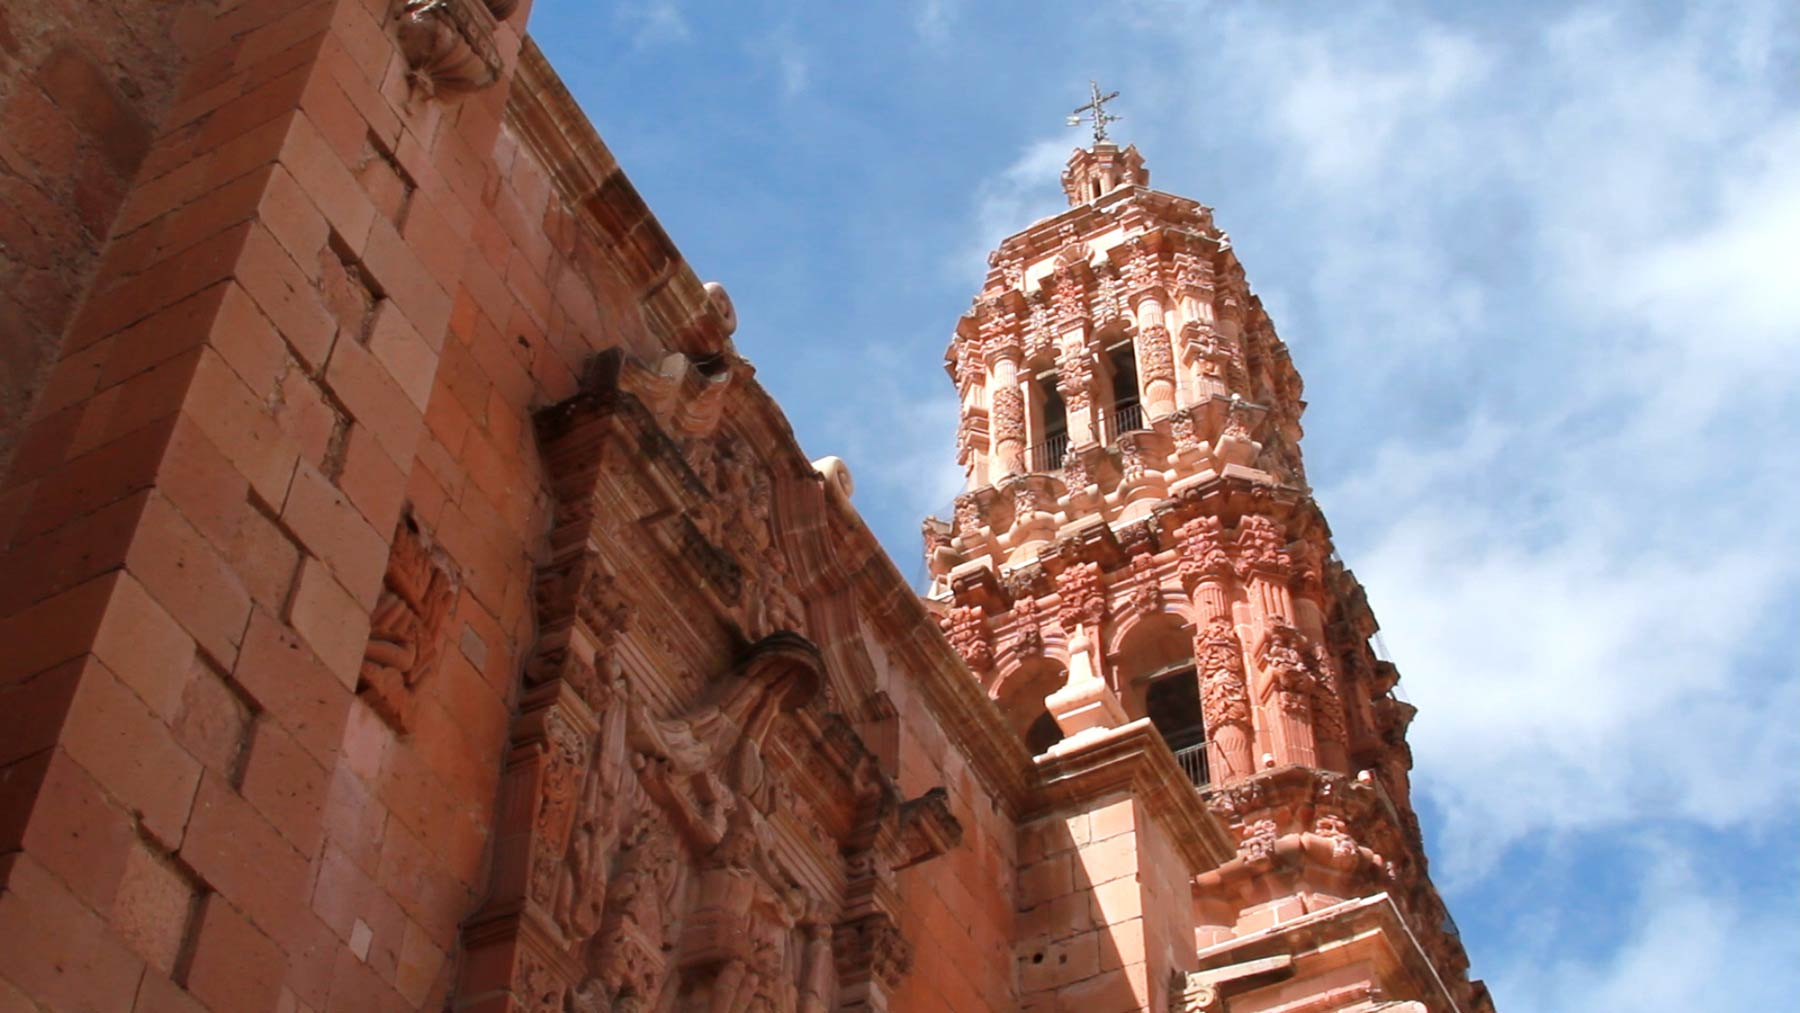 Photo. The Cathedral of Our Lady of the Assumption of Zacatecas was elevated to a basilica in 1959 by Pope John XXIII